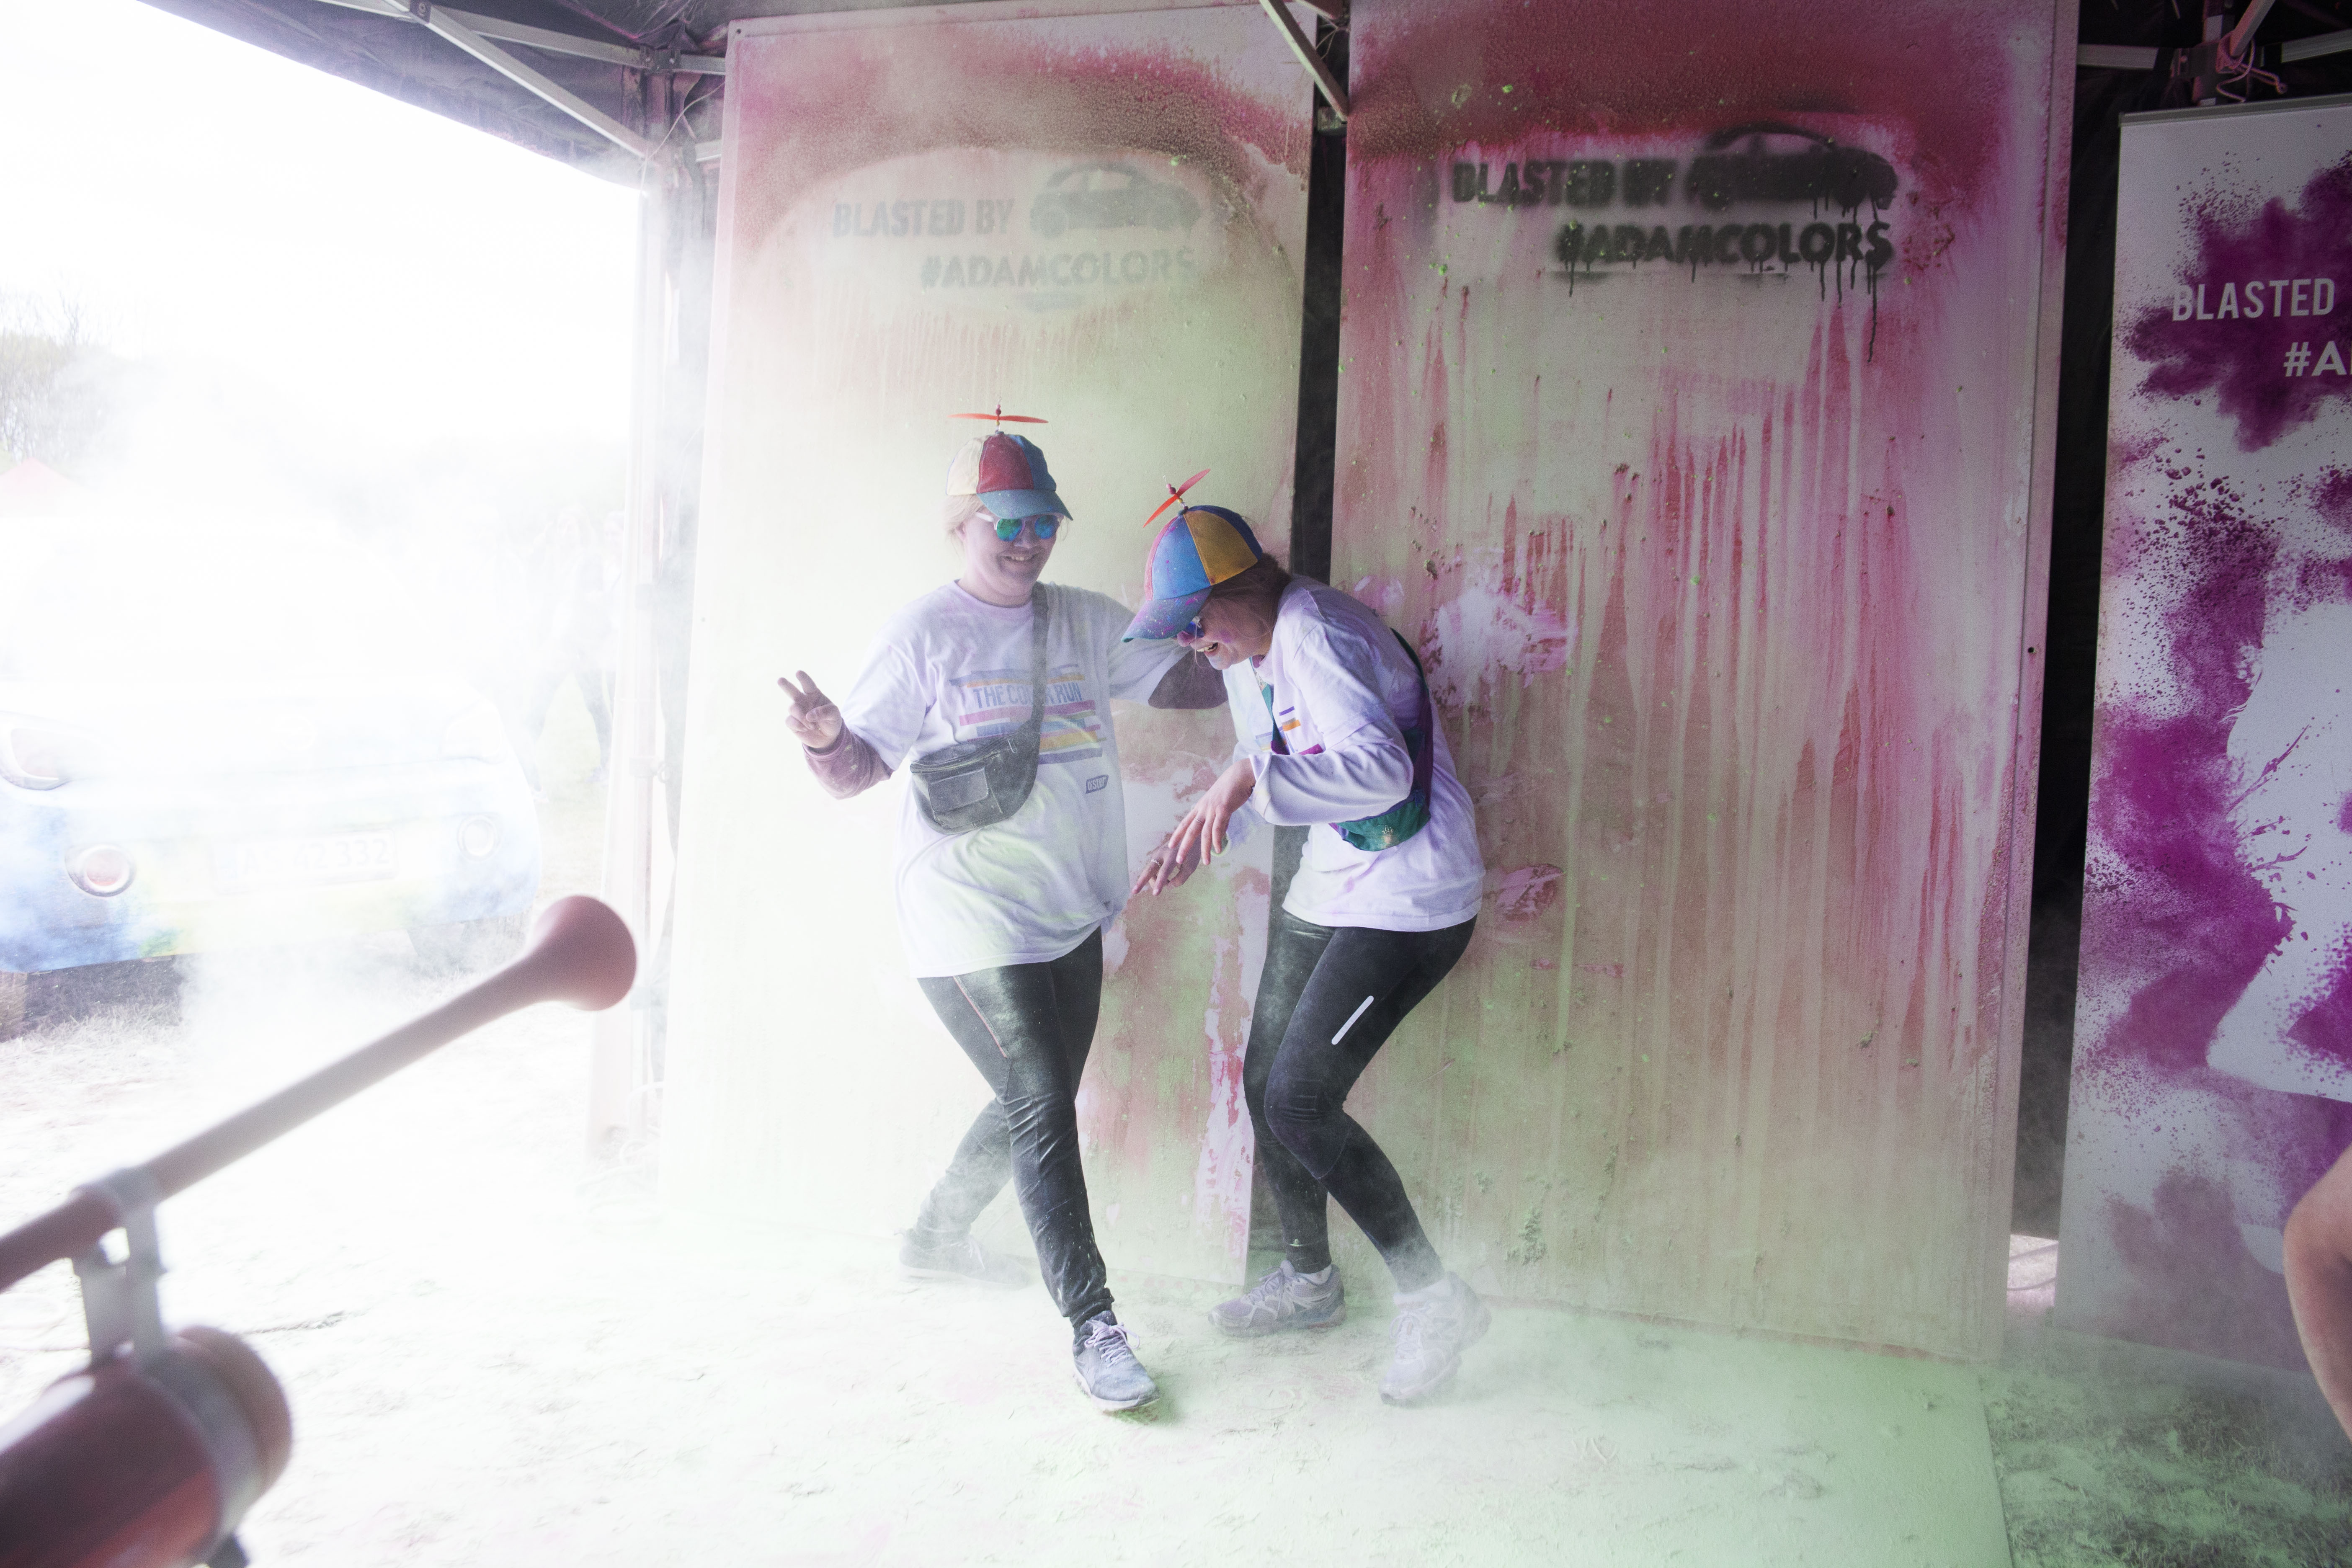 TheColorRun2015_HelenaLundquist_mindre_23